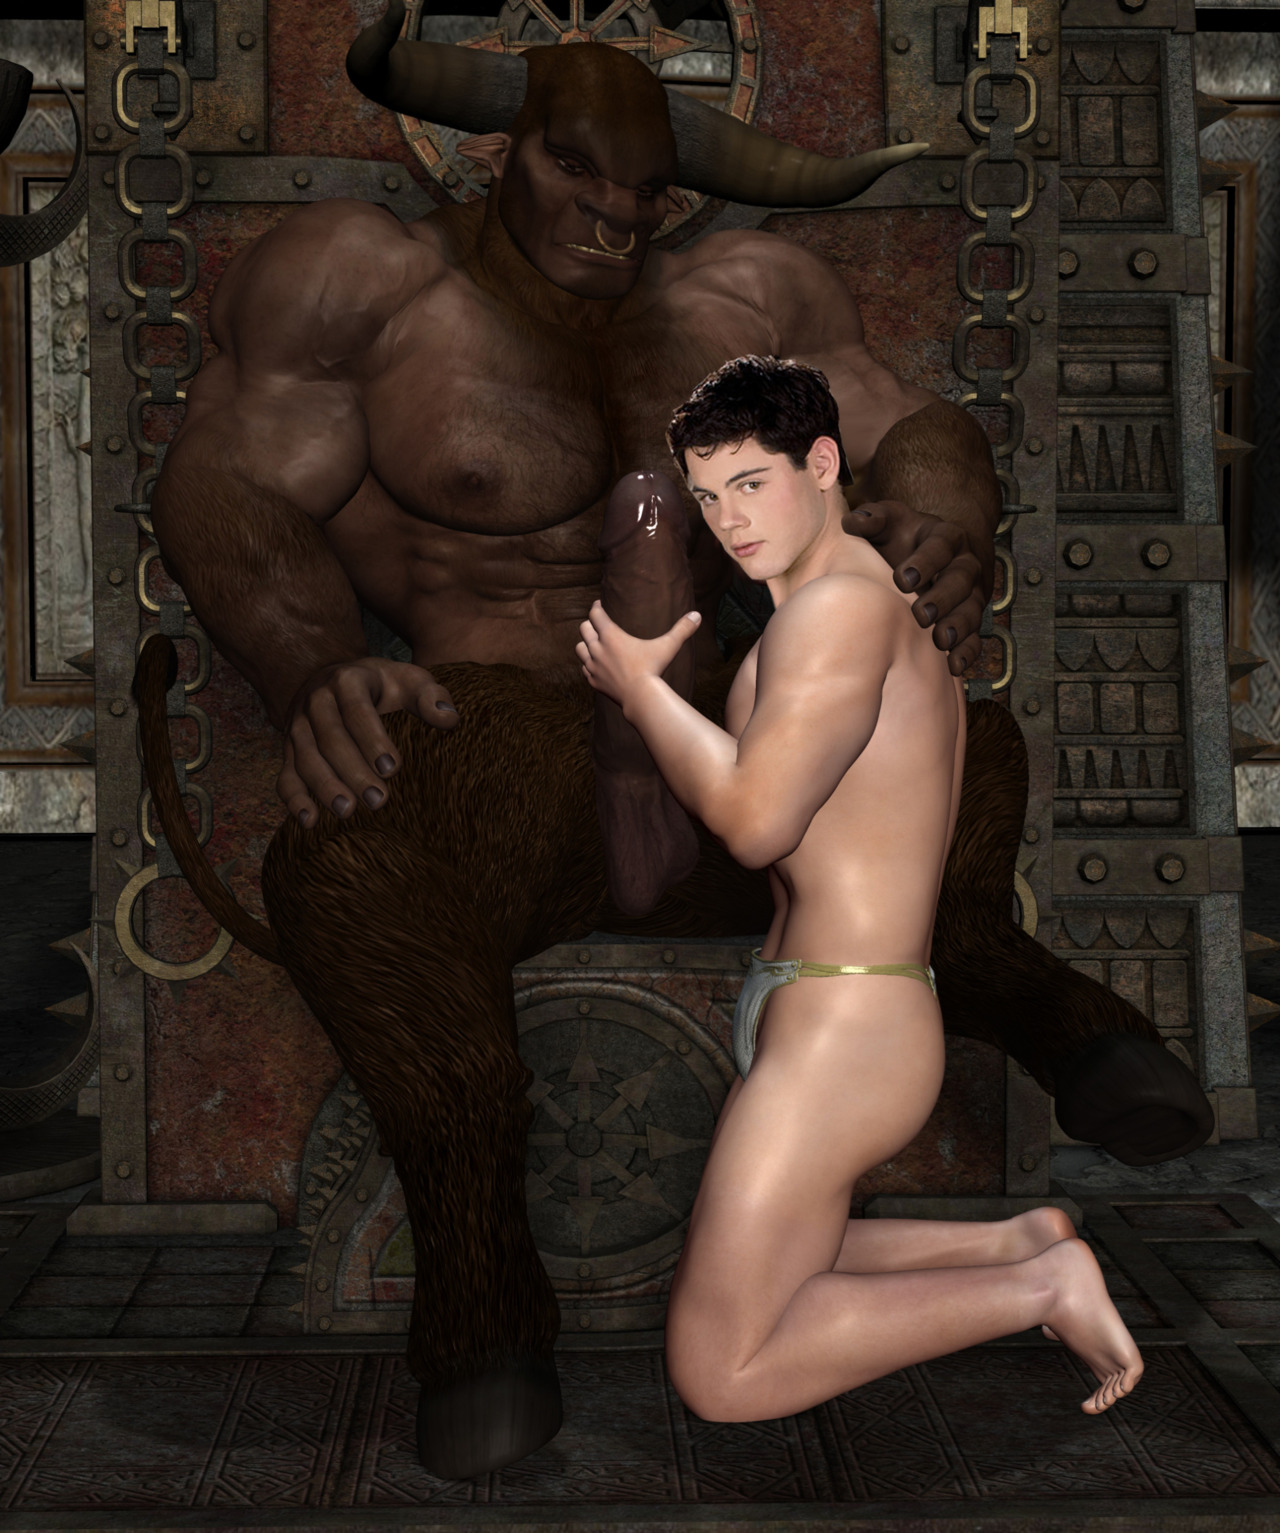 Nude minotaur hentai galleries